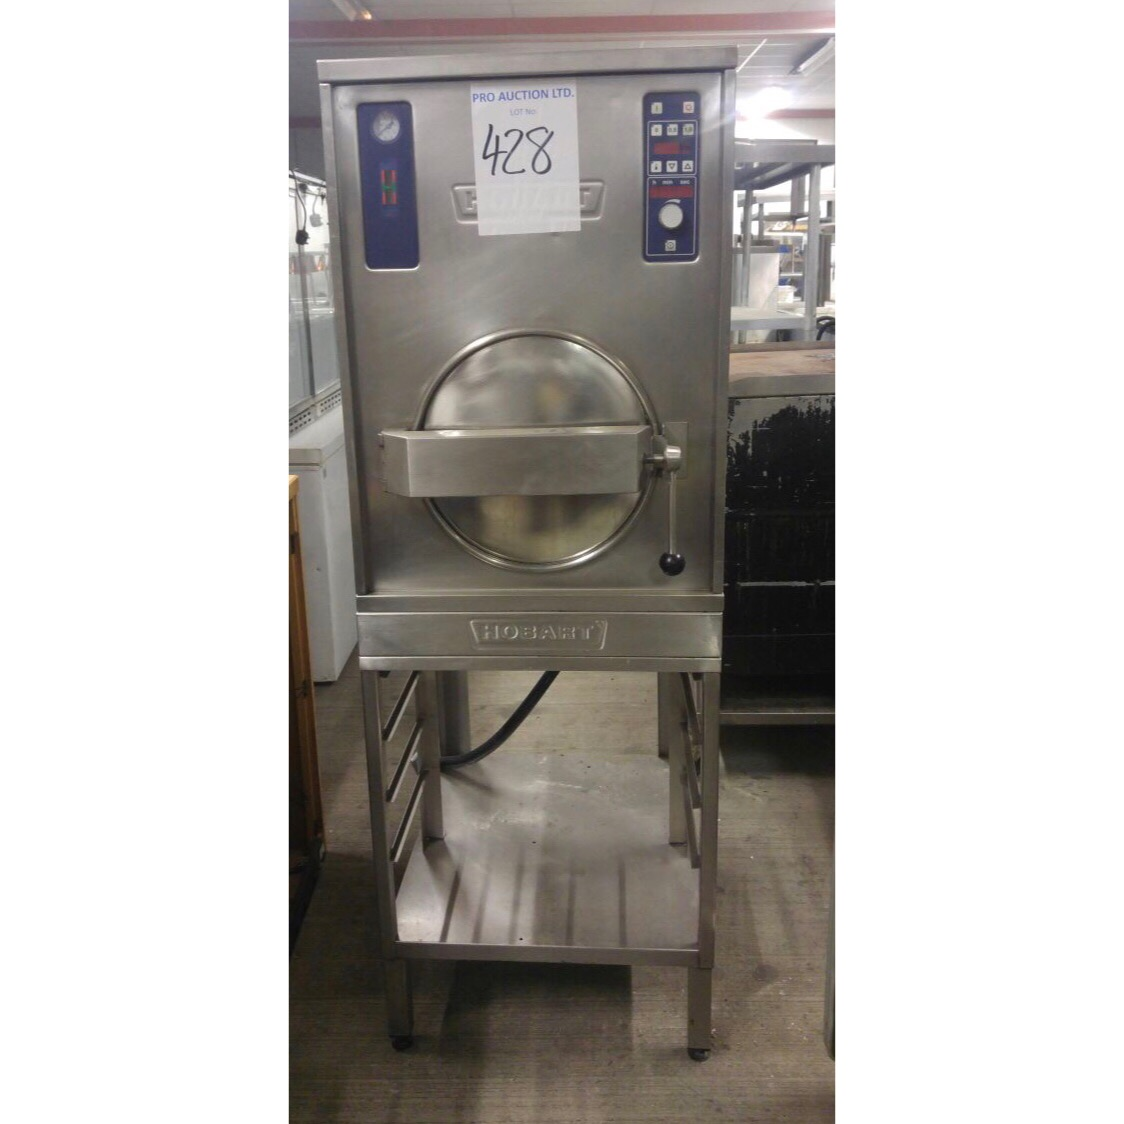 Lot 19 - Hobart Pressure Steamer This is a very healthy method of cooking. Rapid, healthy, cost effective and